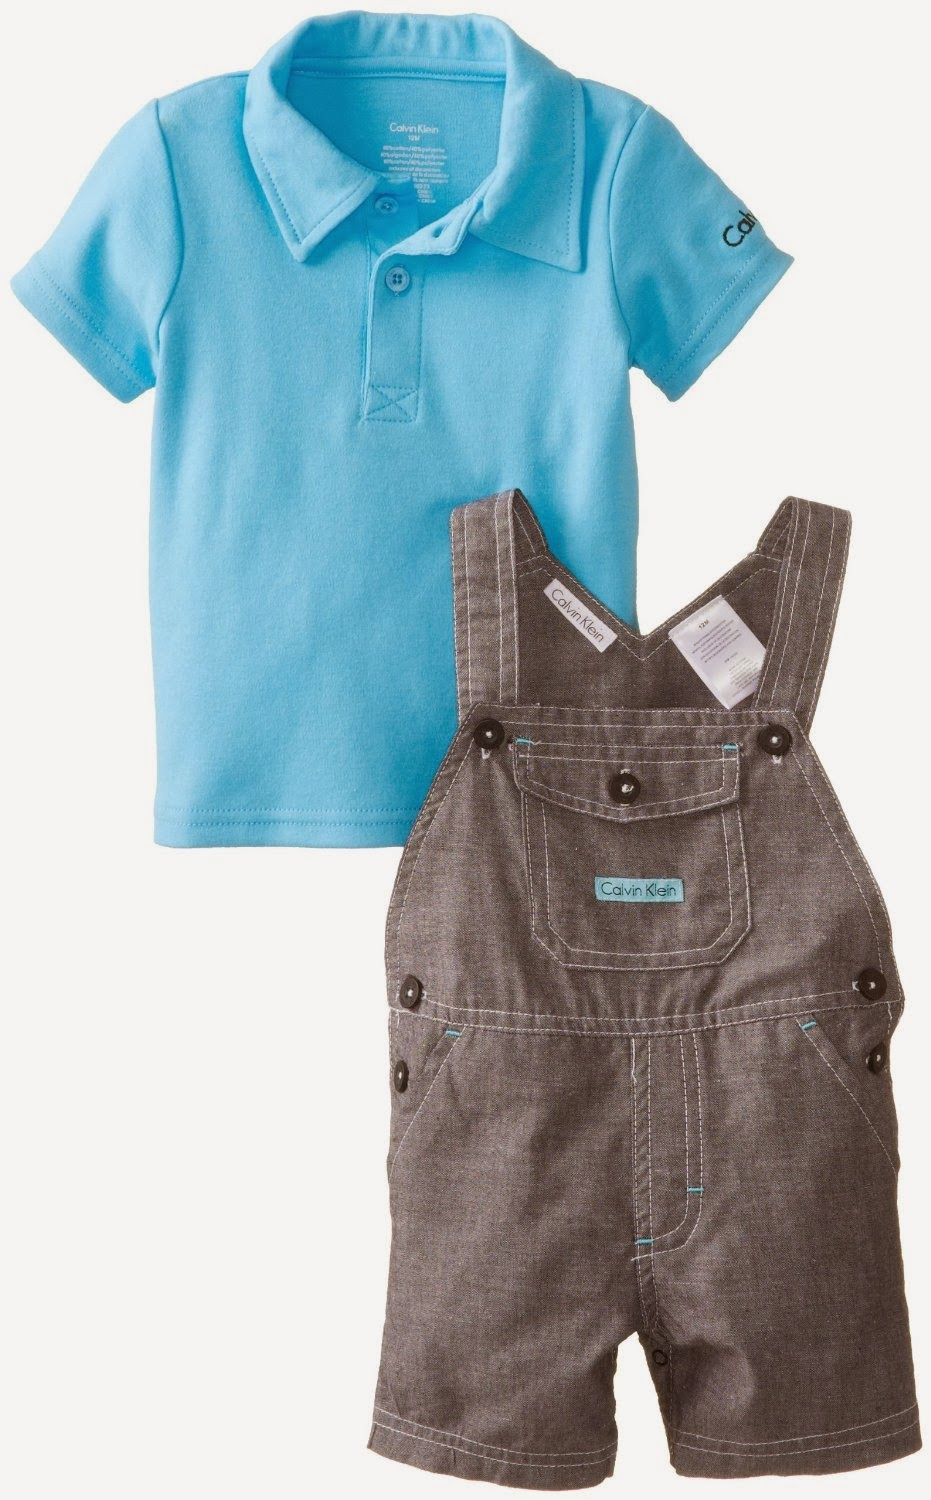 Branded Authentic Baby Clothing - Baju Bayi Branded Yang ...